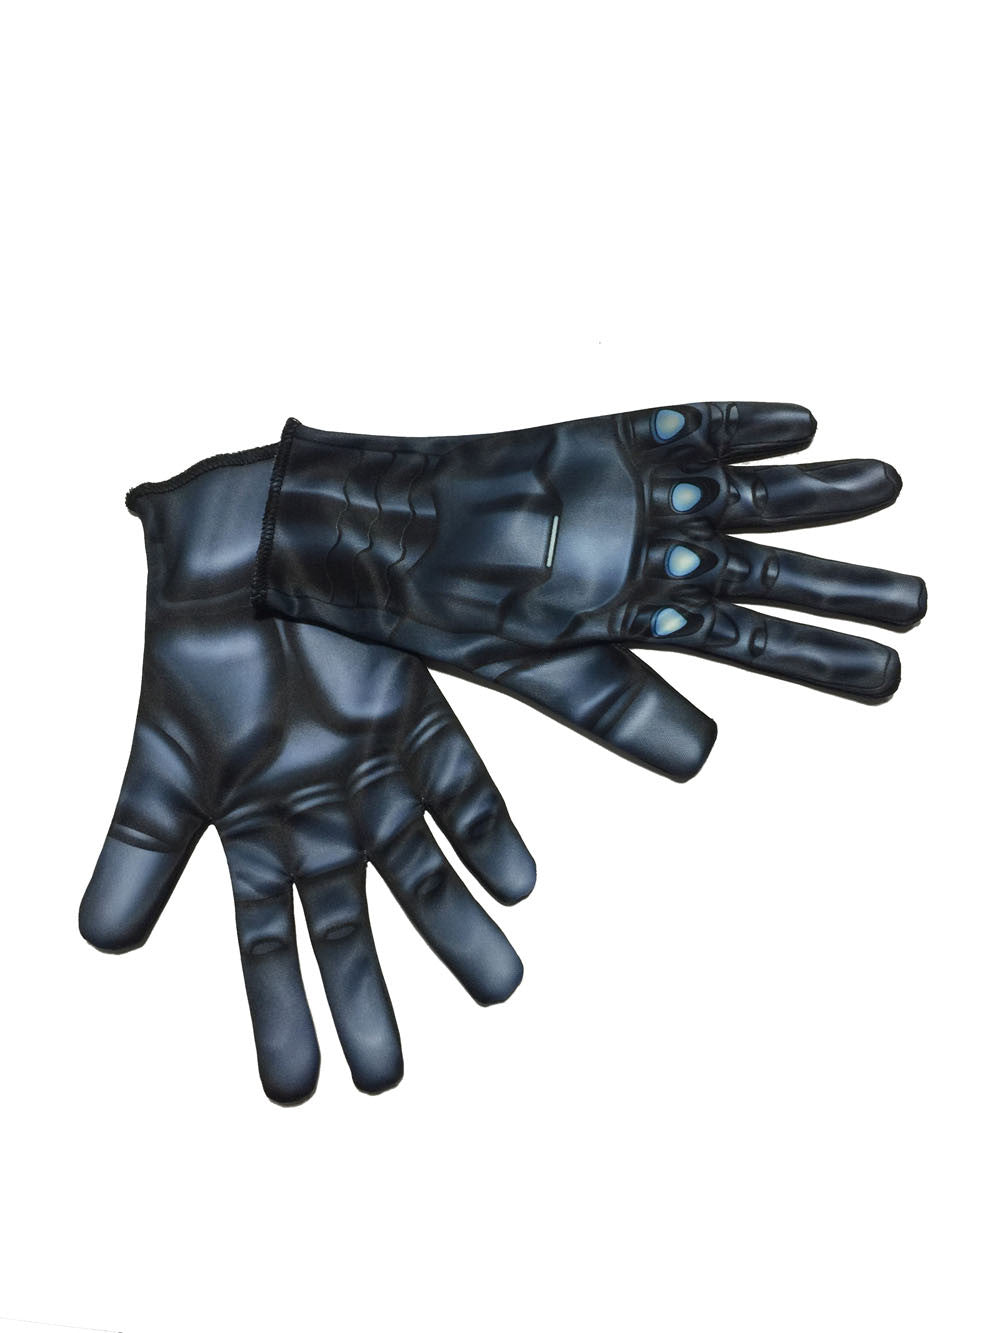 BLACK WIDOW SUPERHERO COSTUME GLOVES, ADULT SIZE